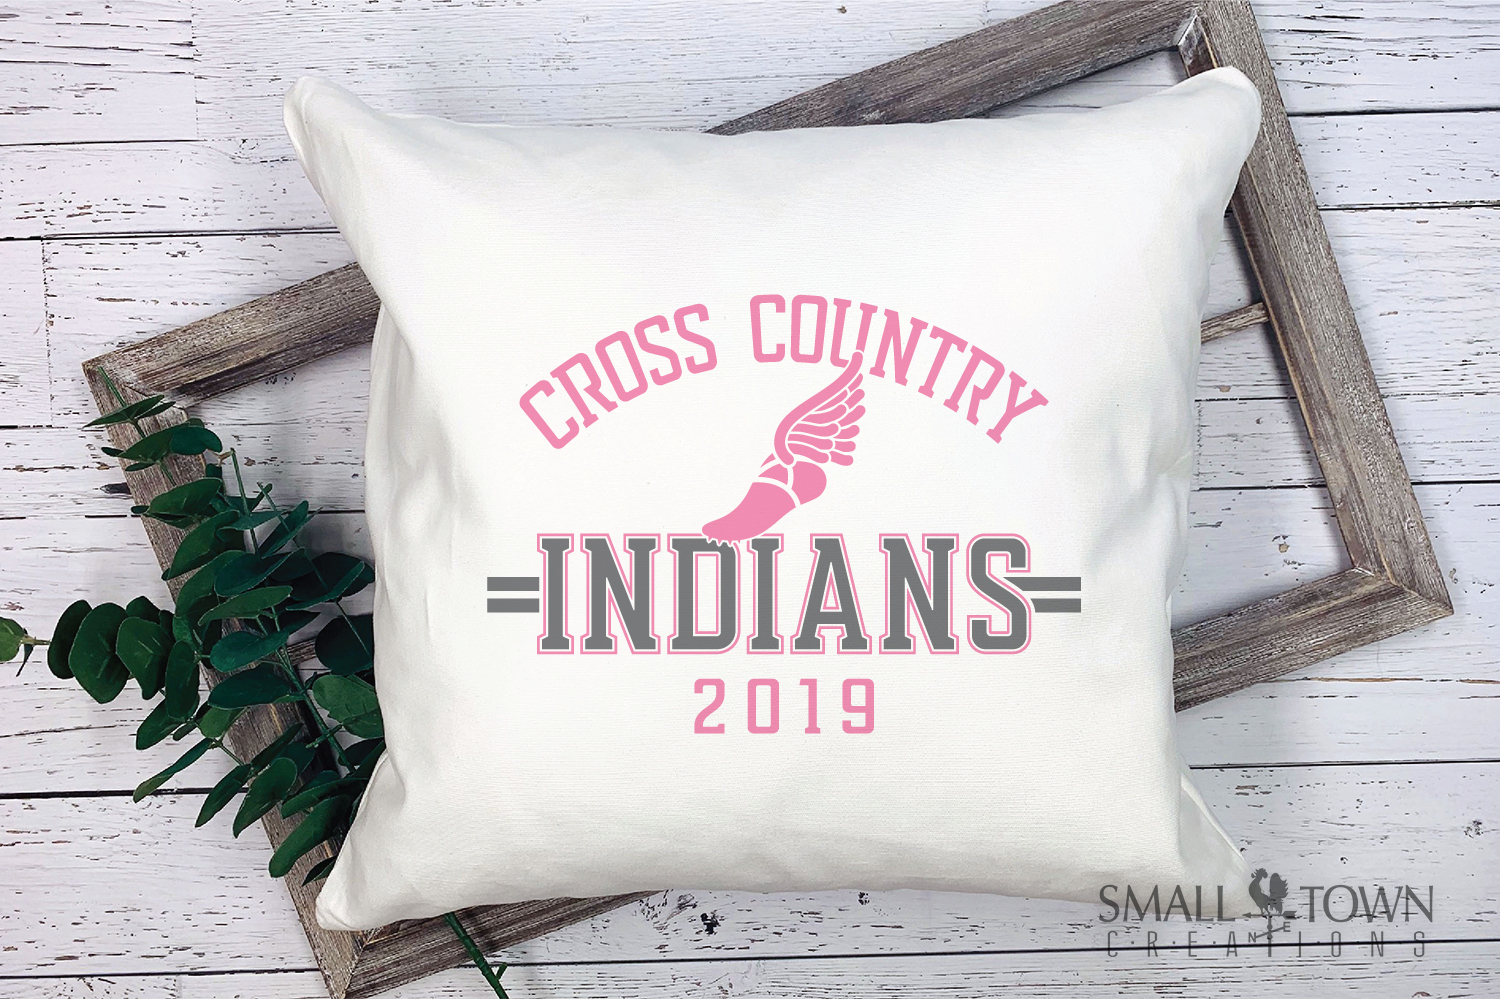 Indian Cross Country, Indians mascot, PRINT, CUT, DESIGN example image 3